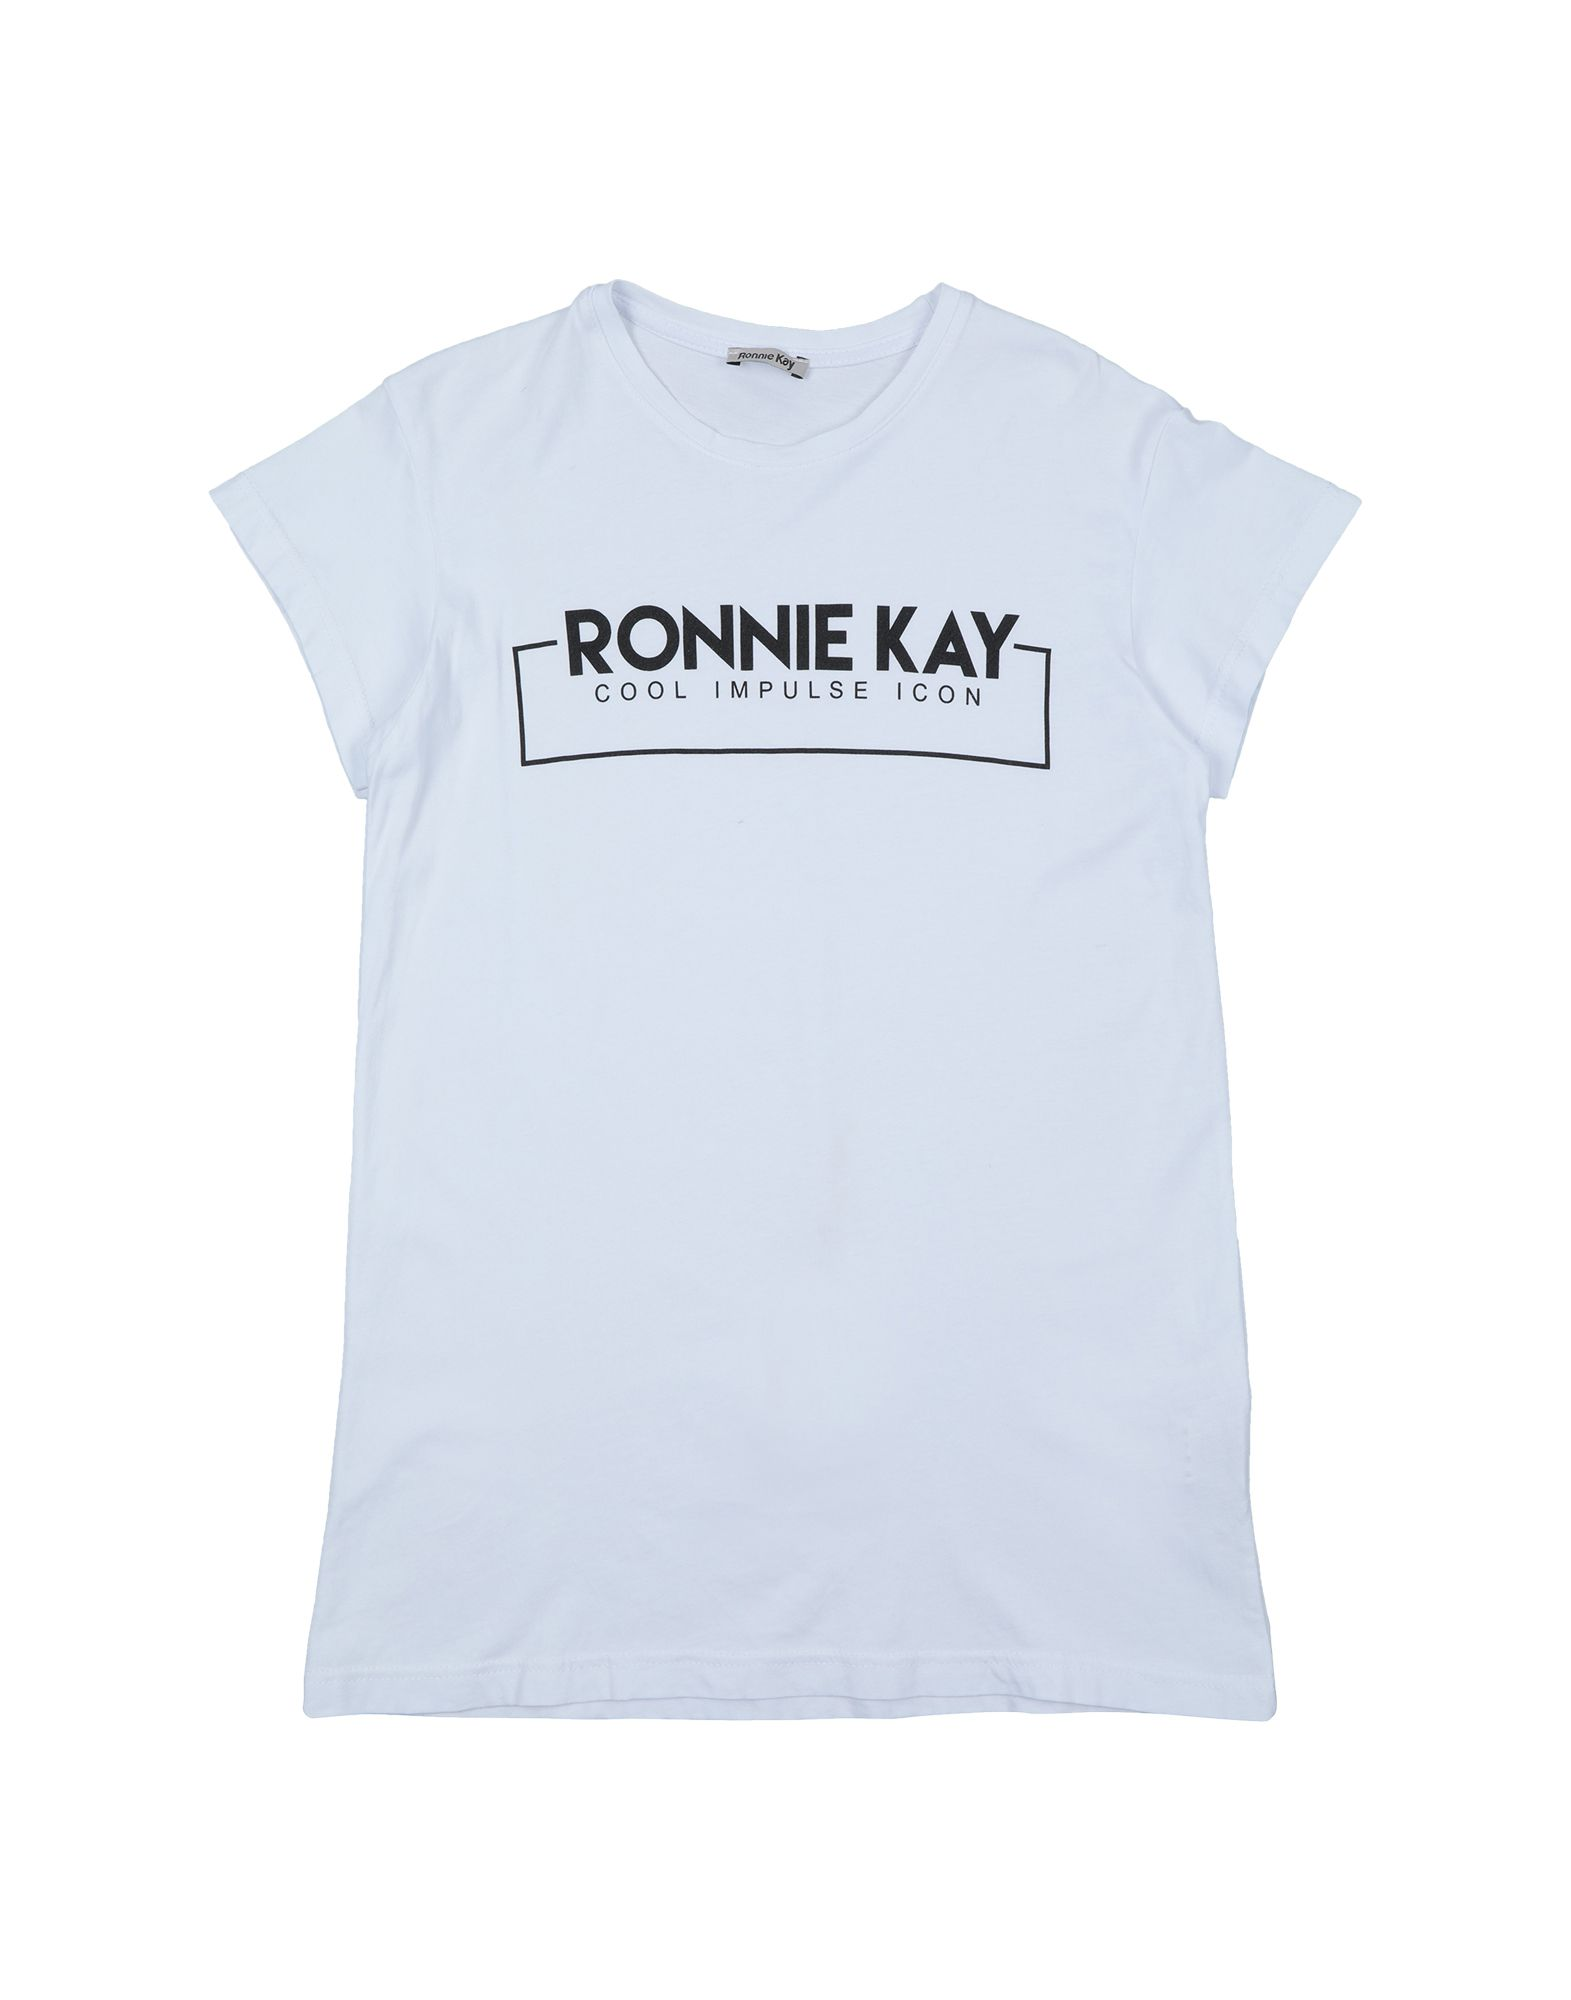 Ronnie Kay Kids' T-shirts In Blue